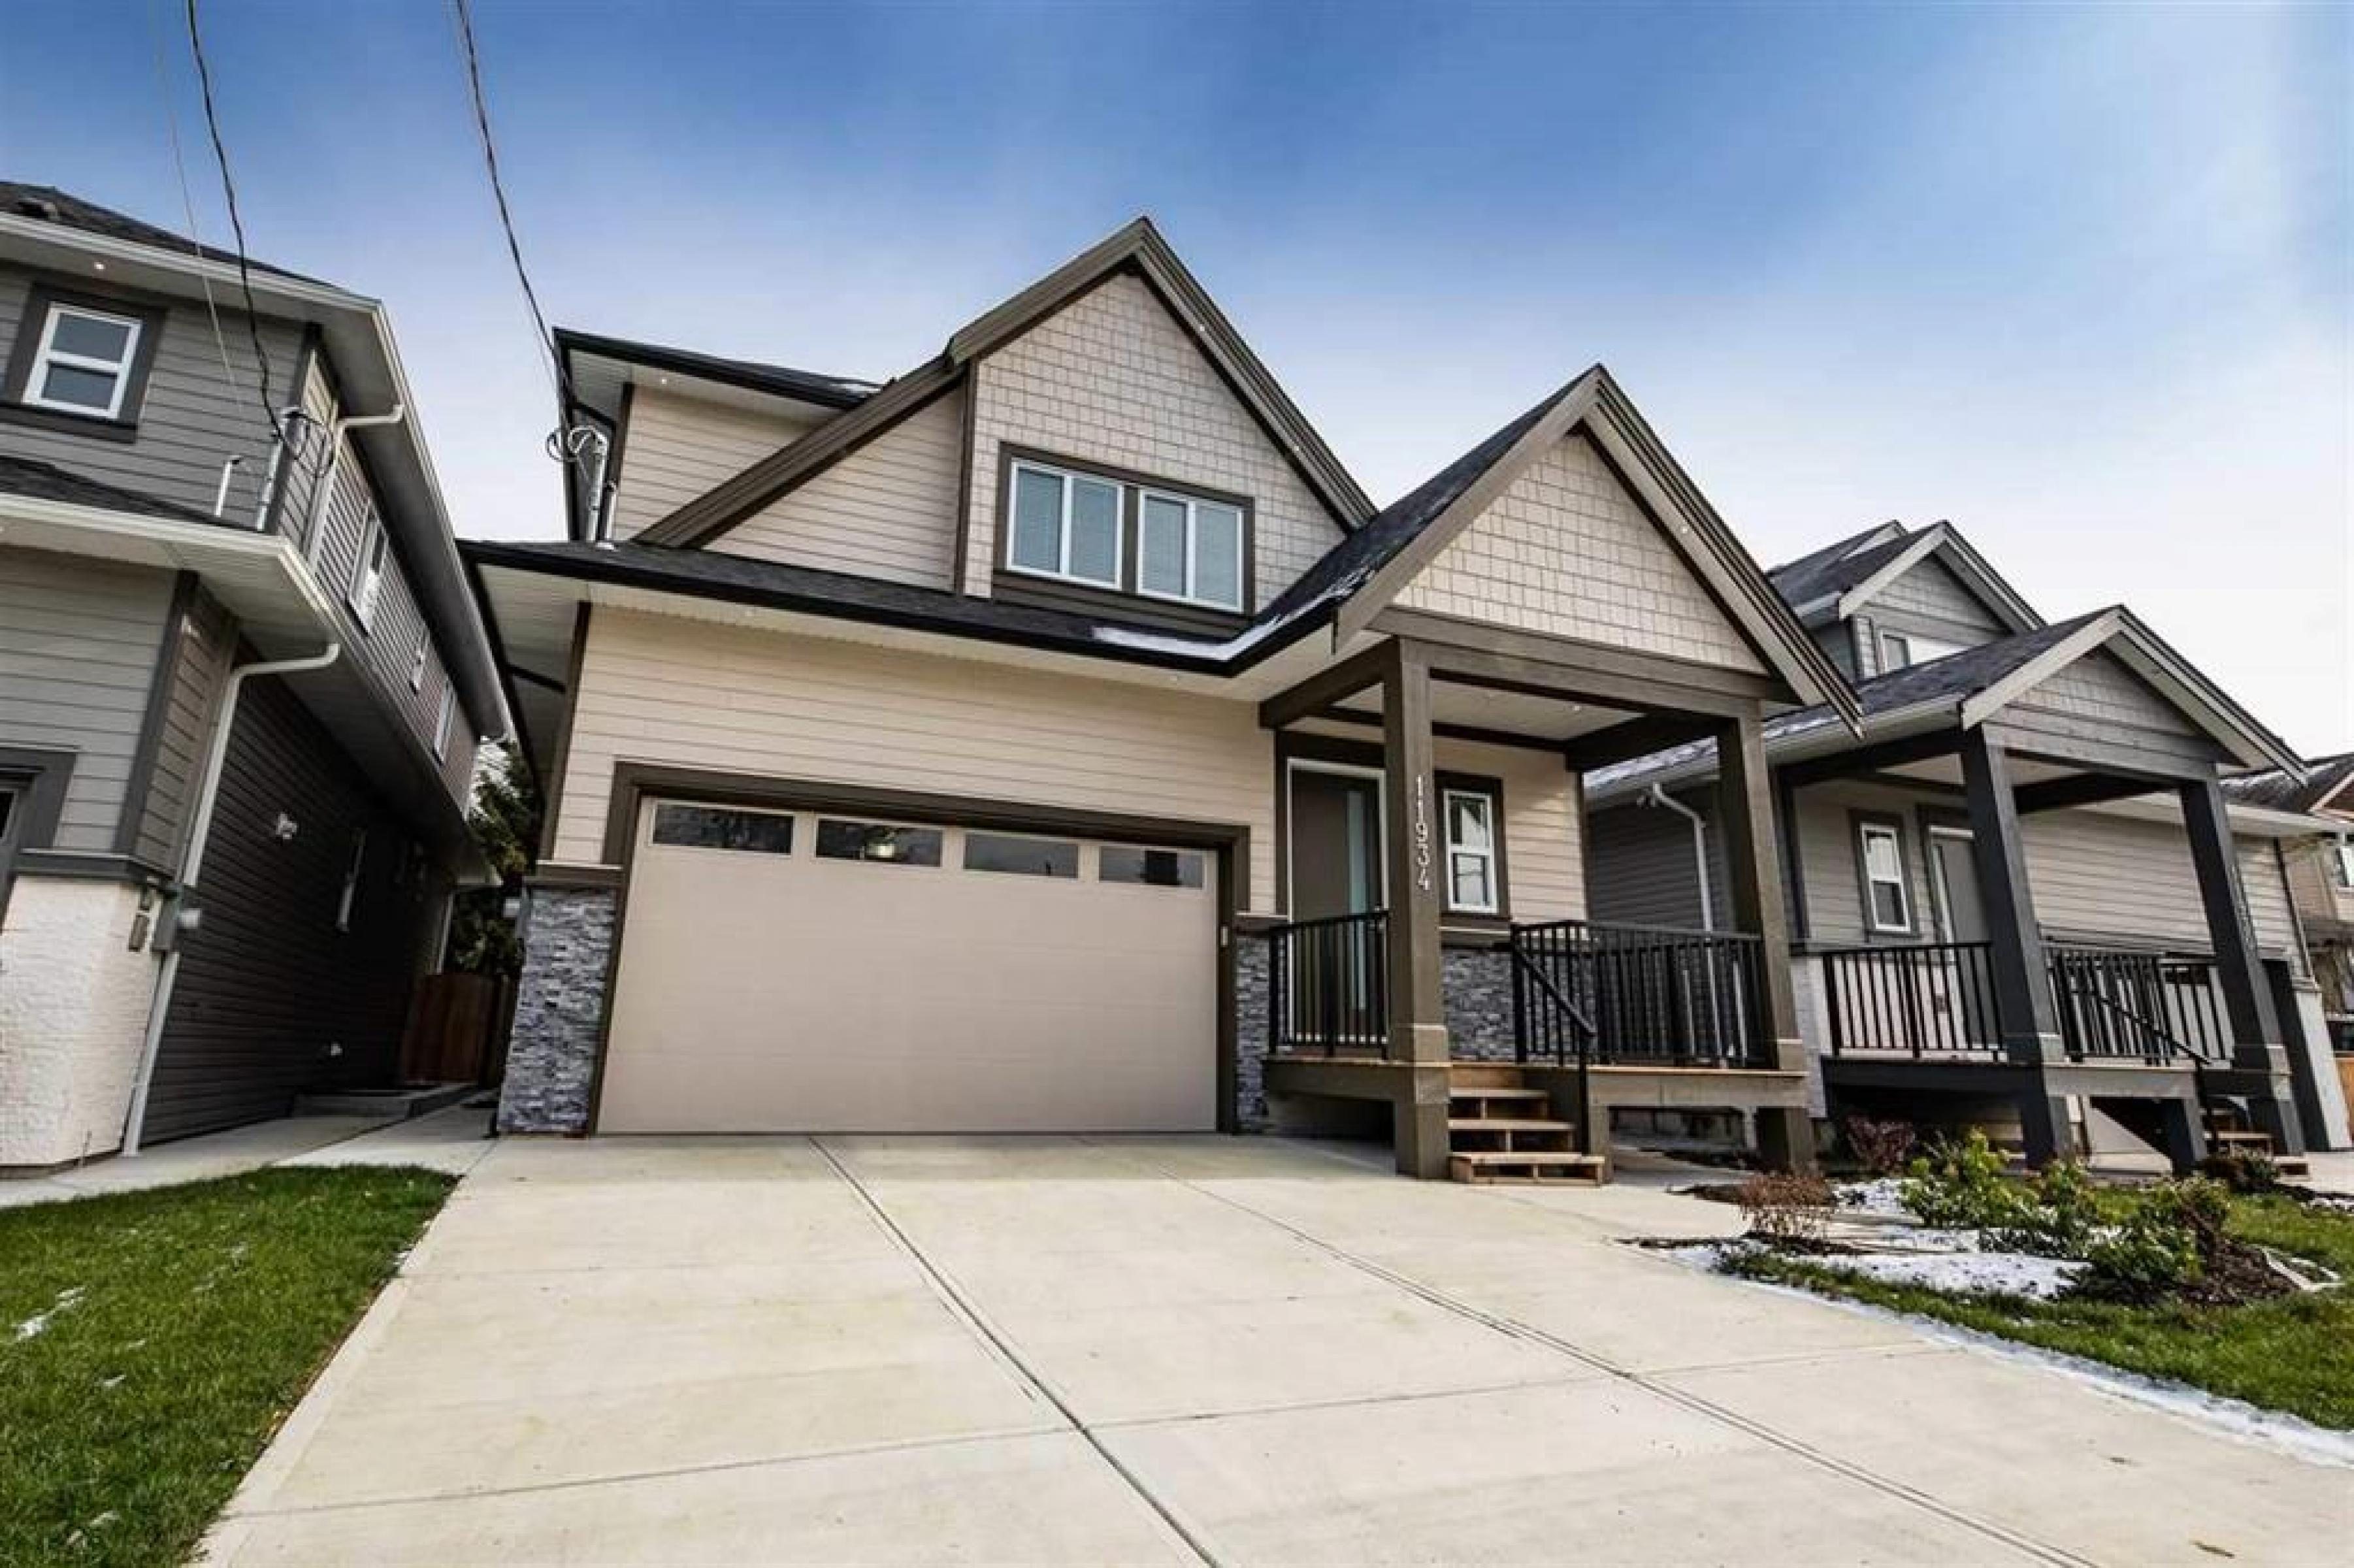 11934 Blakely Road, Central Meadows, Pitt Meadows